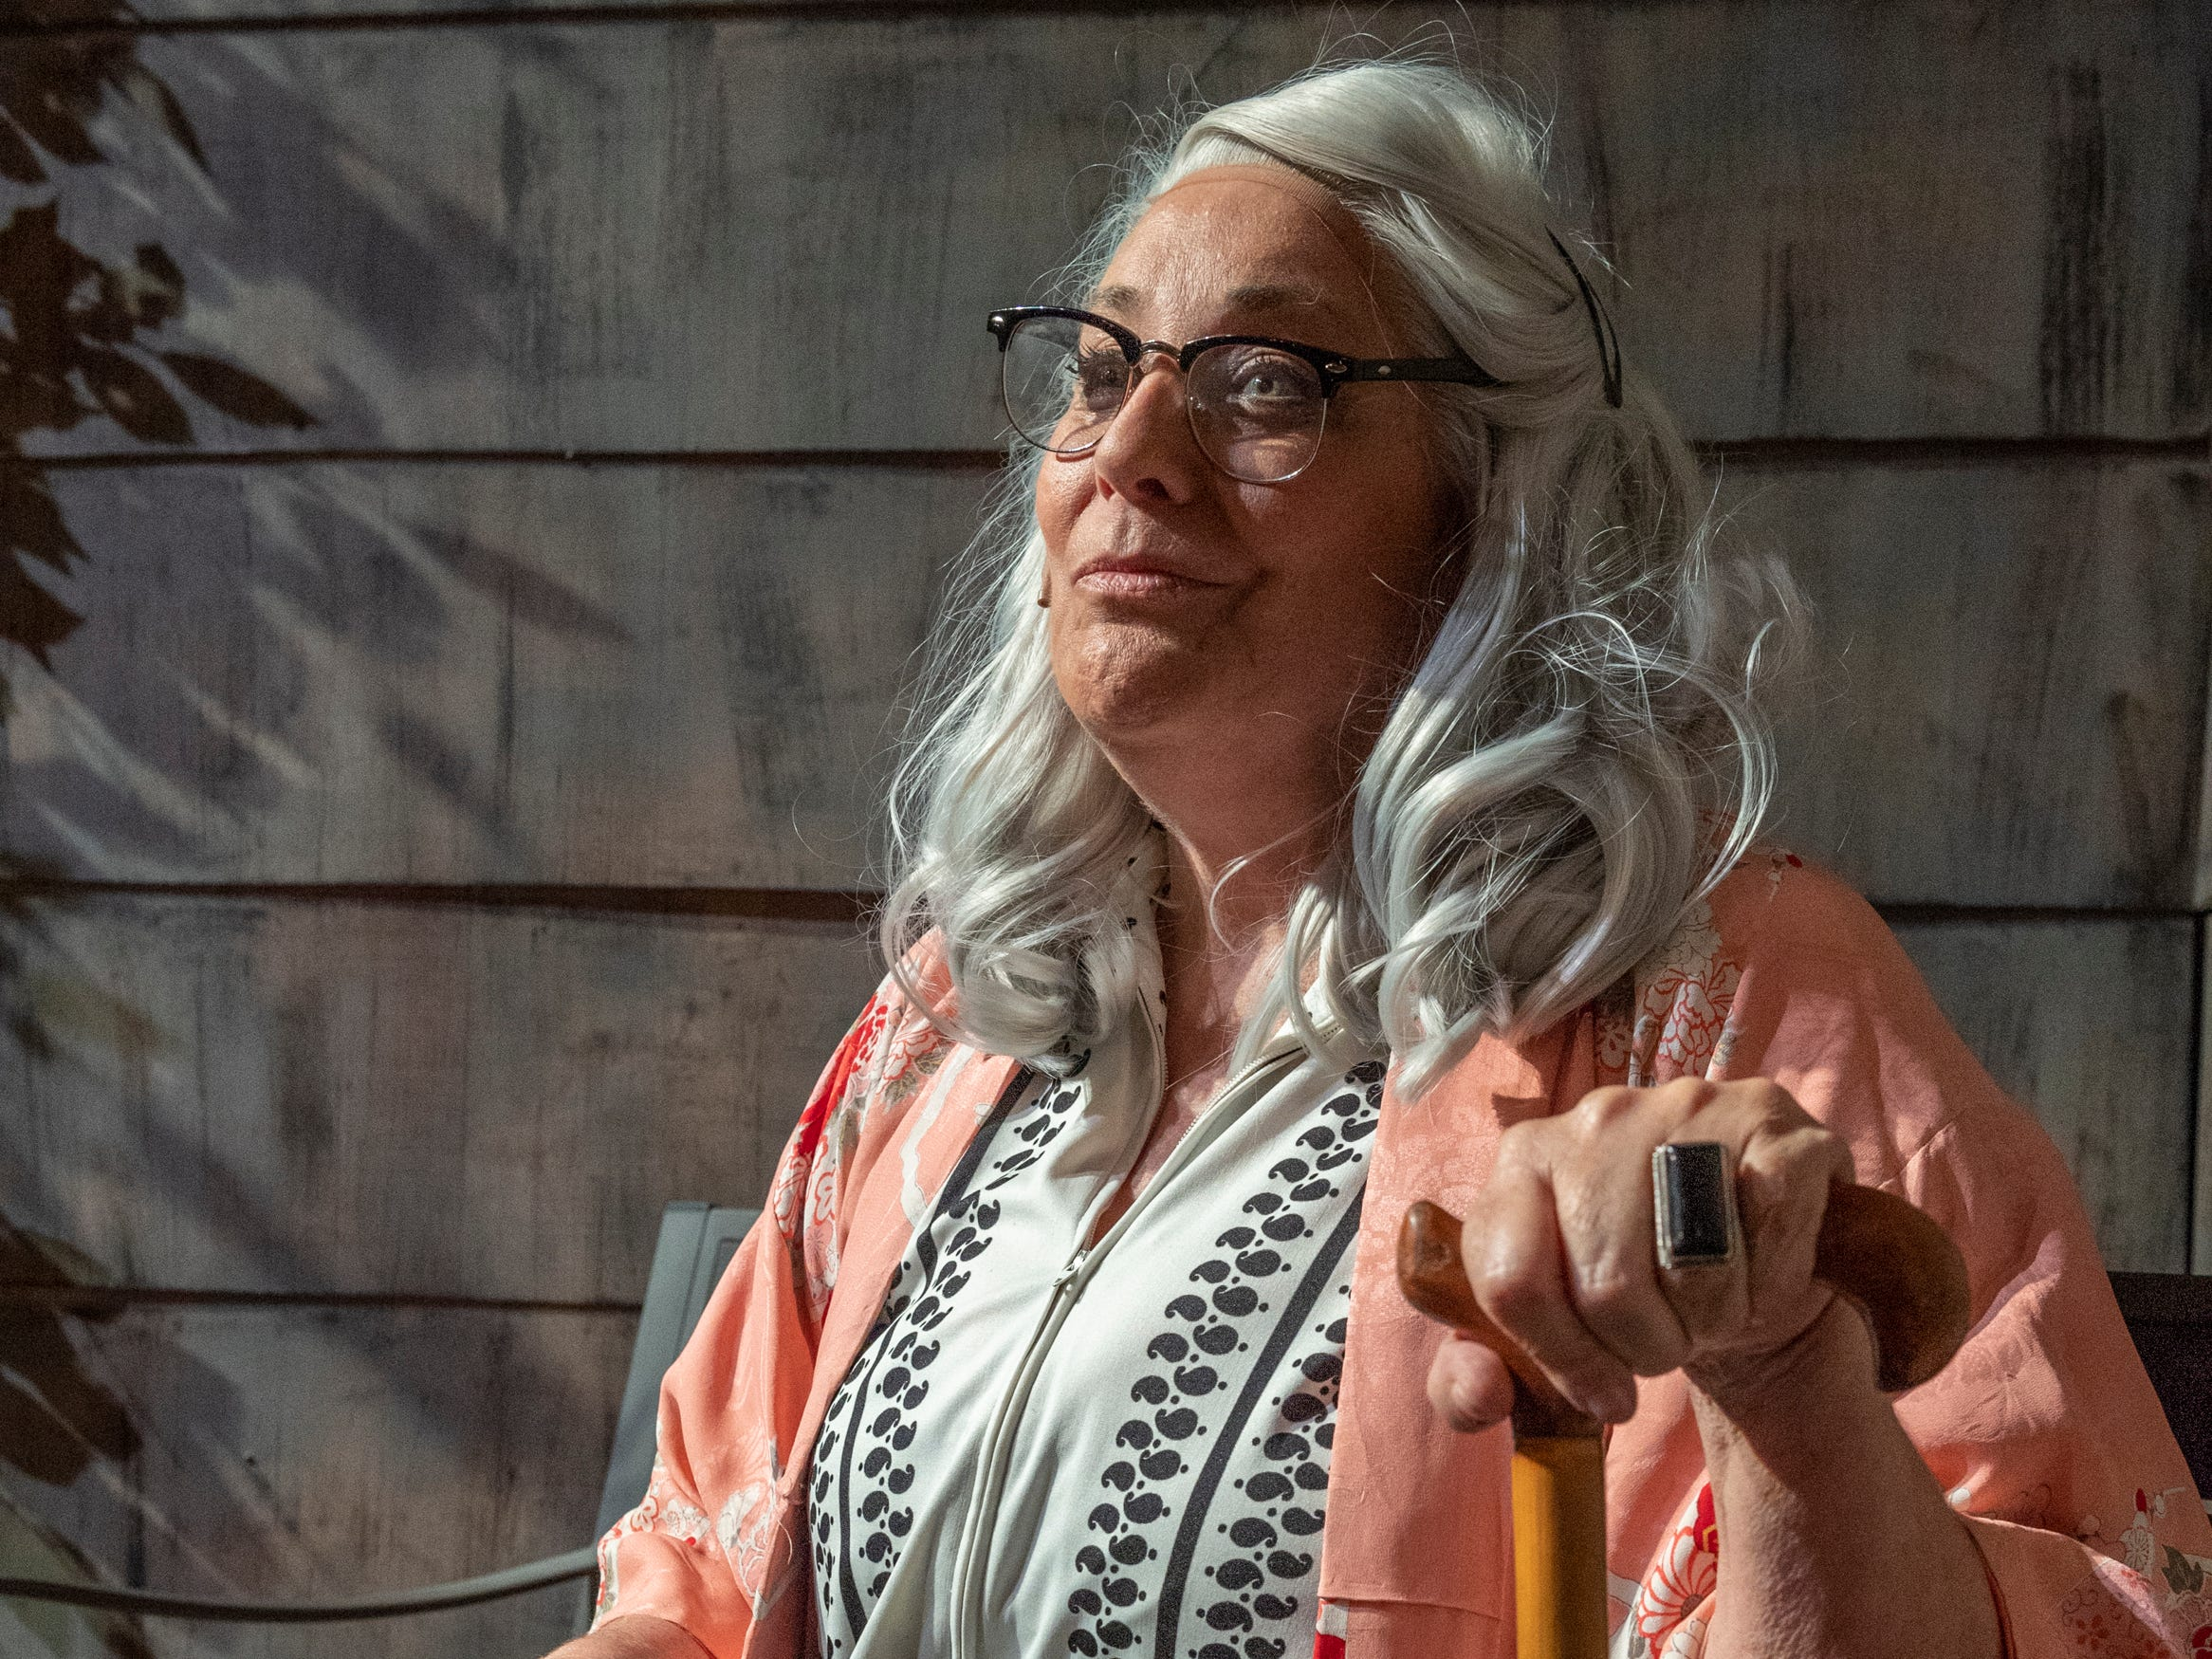 Debra Hansen rehearses for Visalia Players production of Grey Gardens at the Ice House Theater on Tuesday, January 29, 2019.